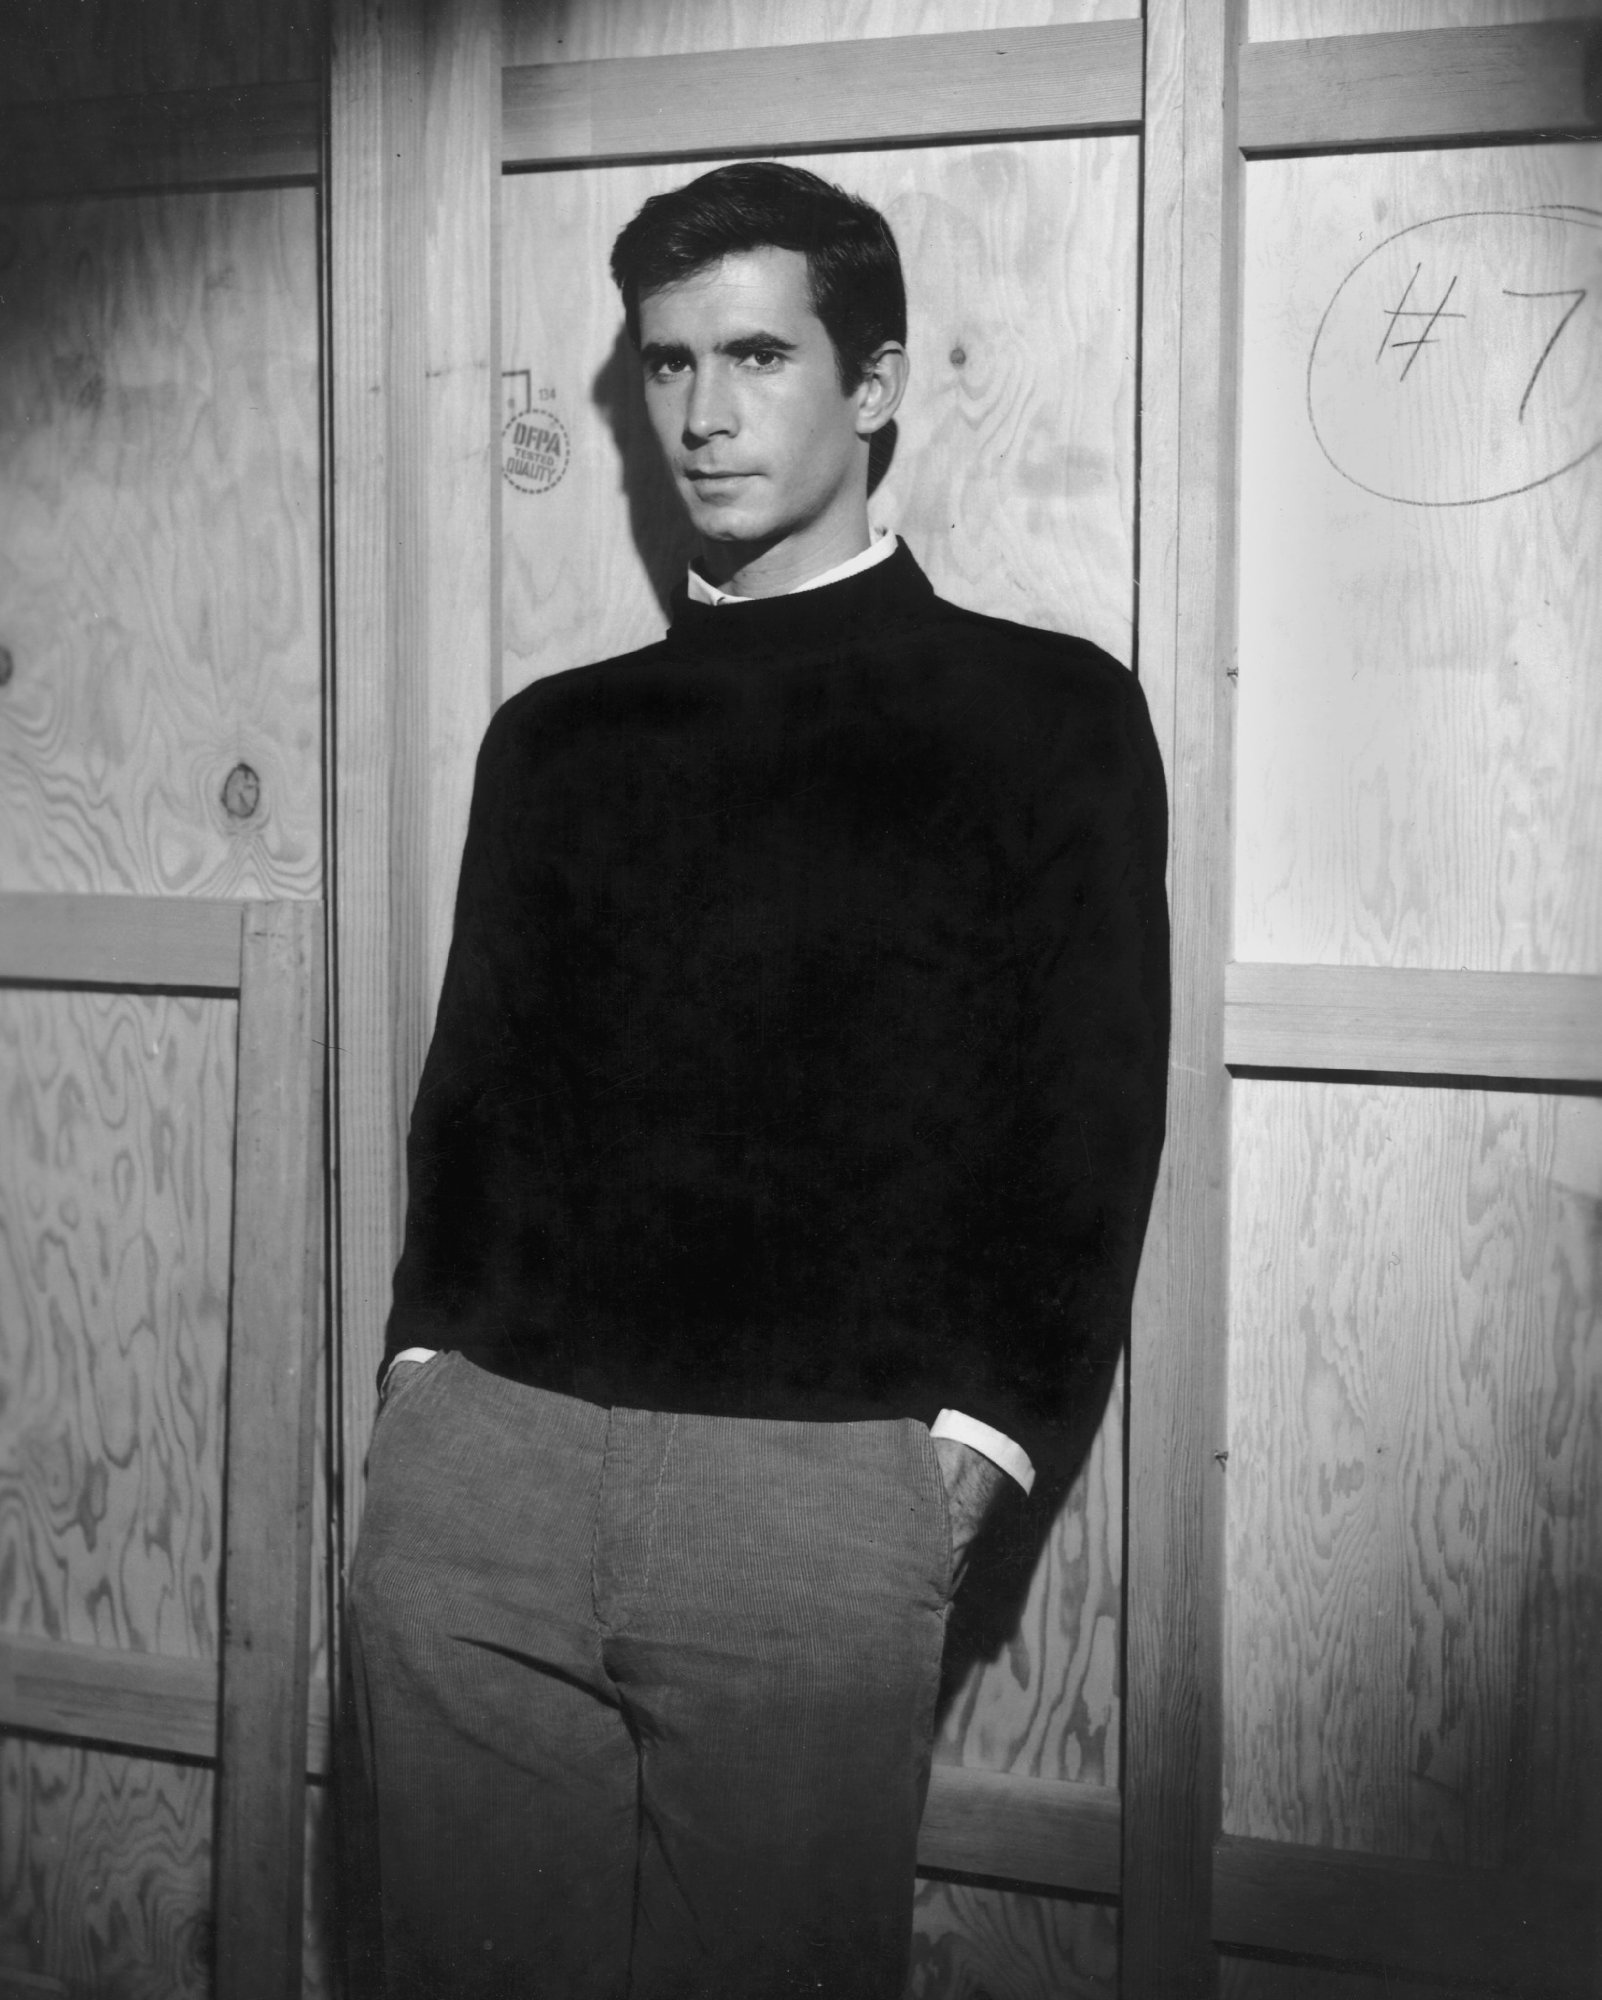 Only high quality pics and photos of Anthony Perkins. Anthony Perkins